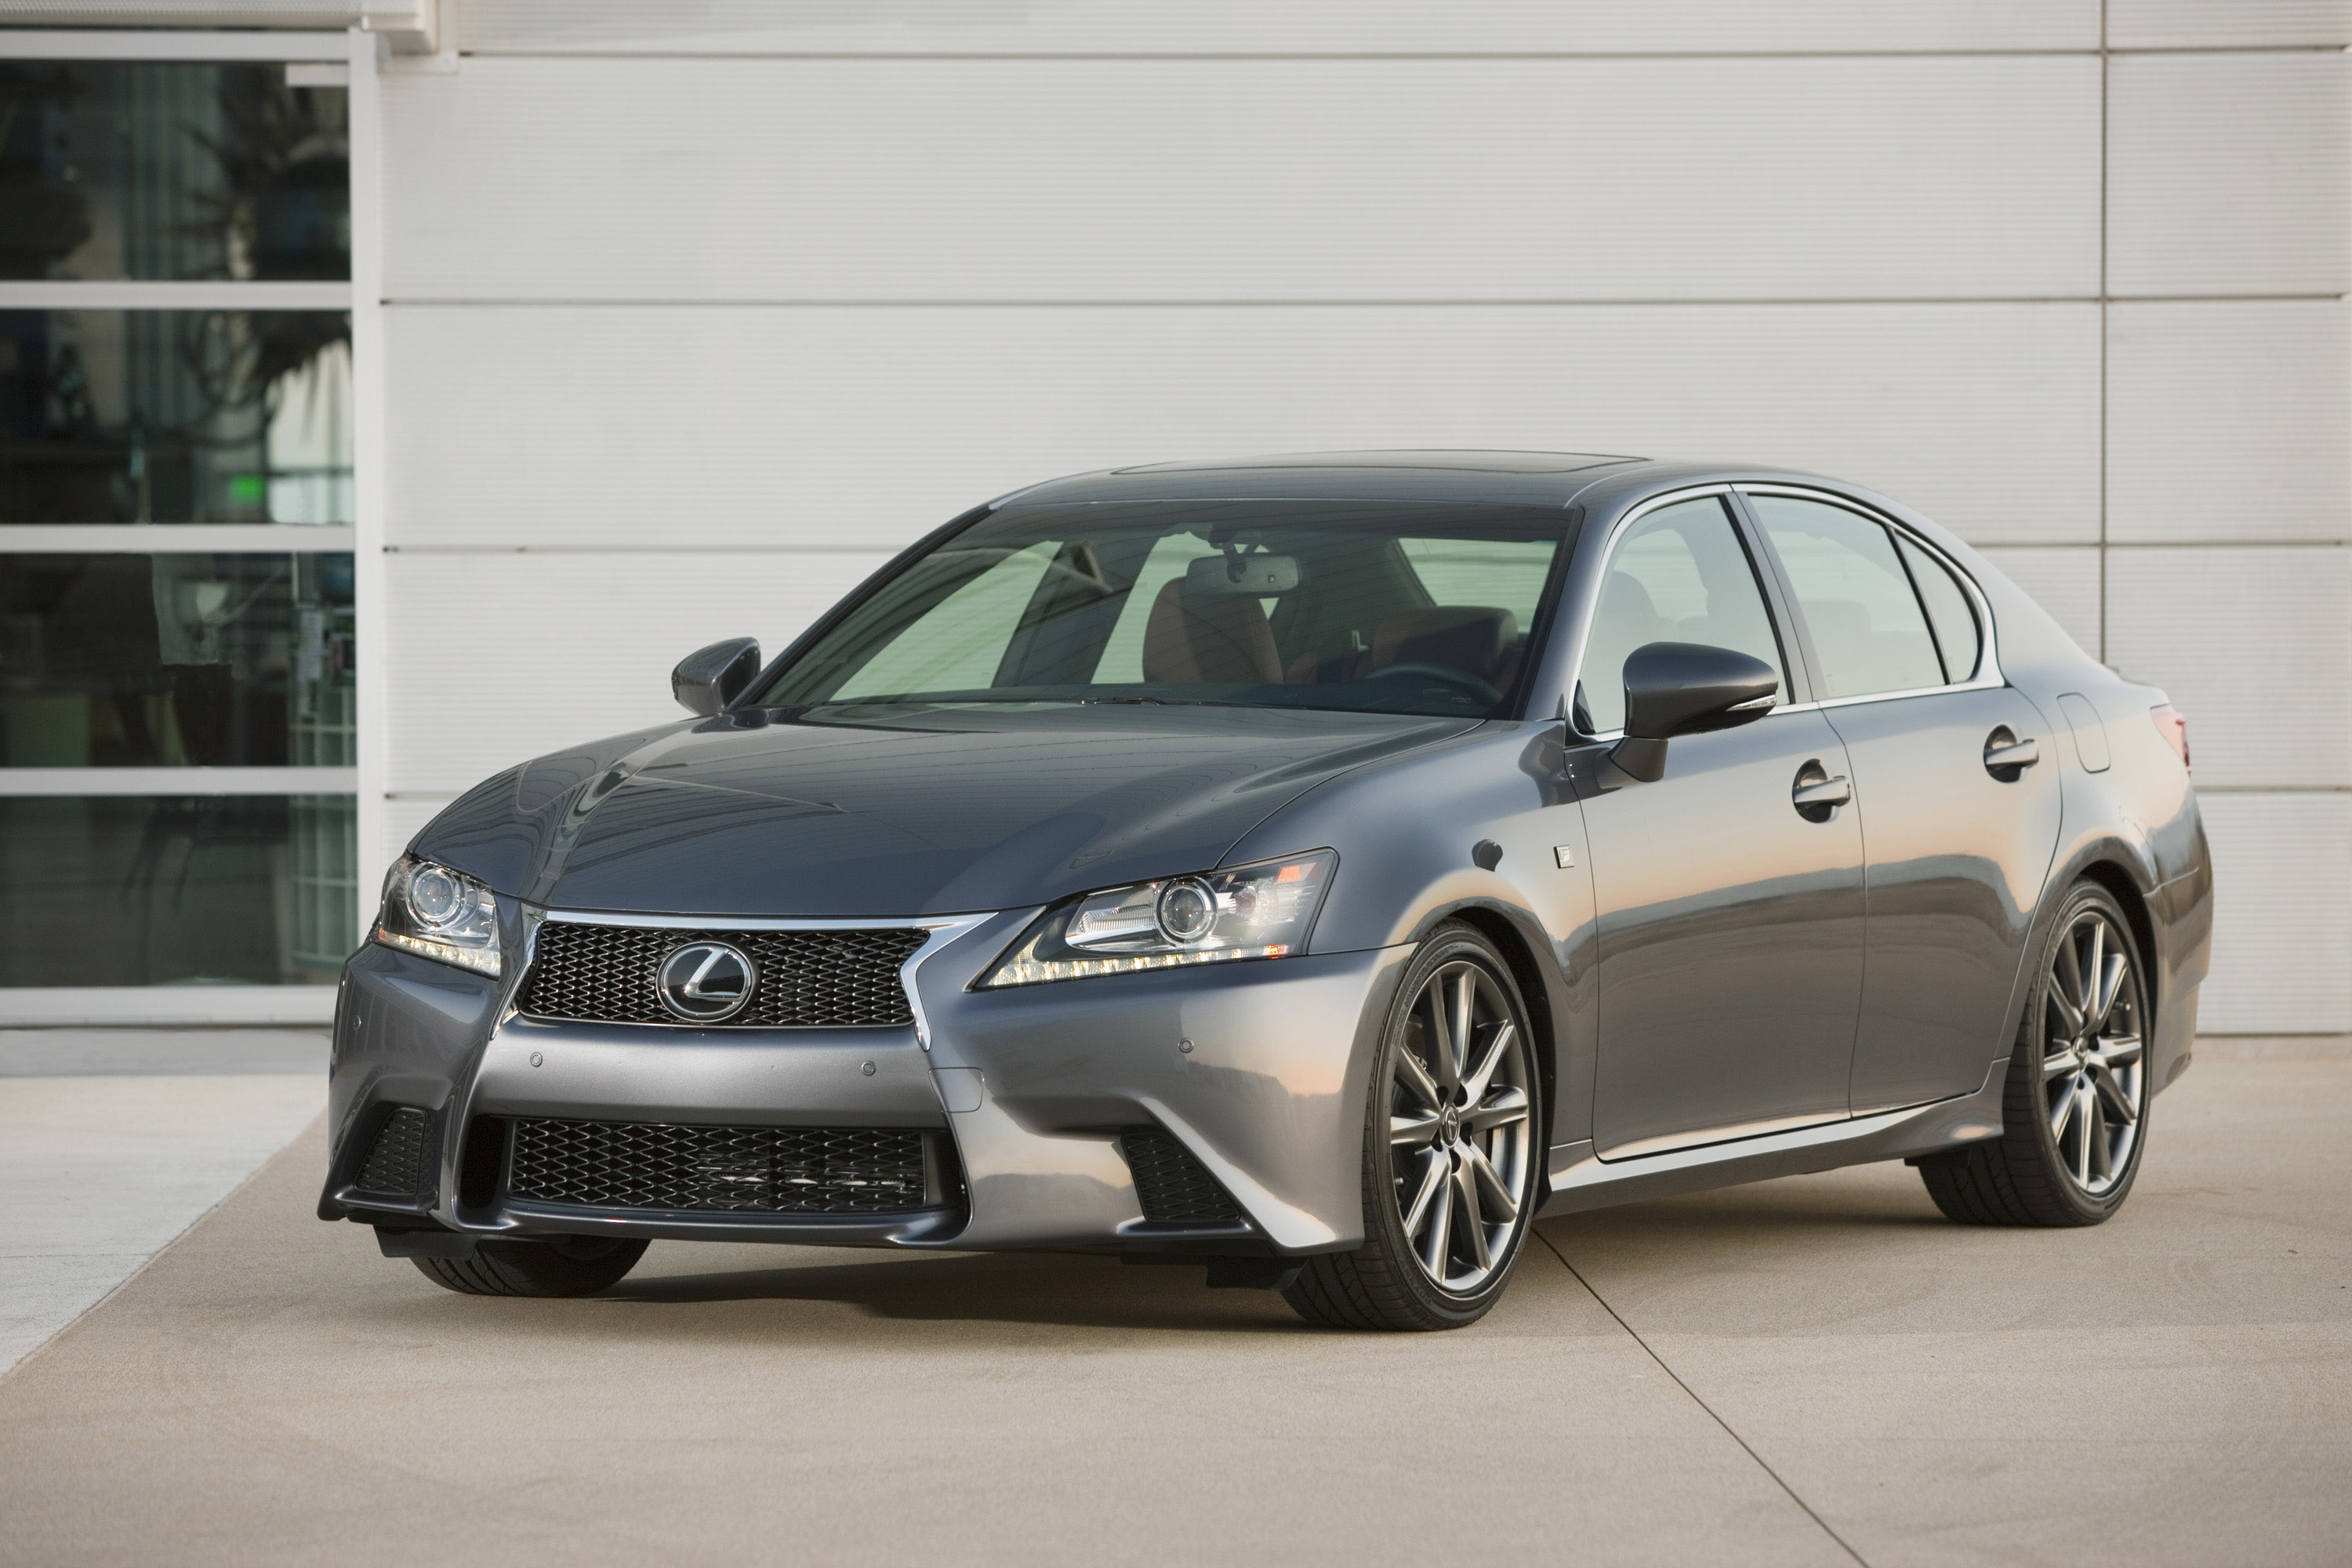 Lexus GS 350 F Sport photo #1